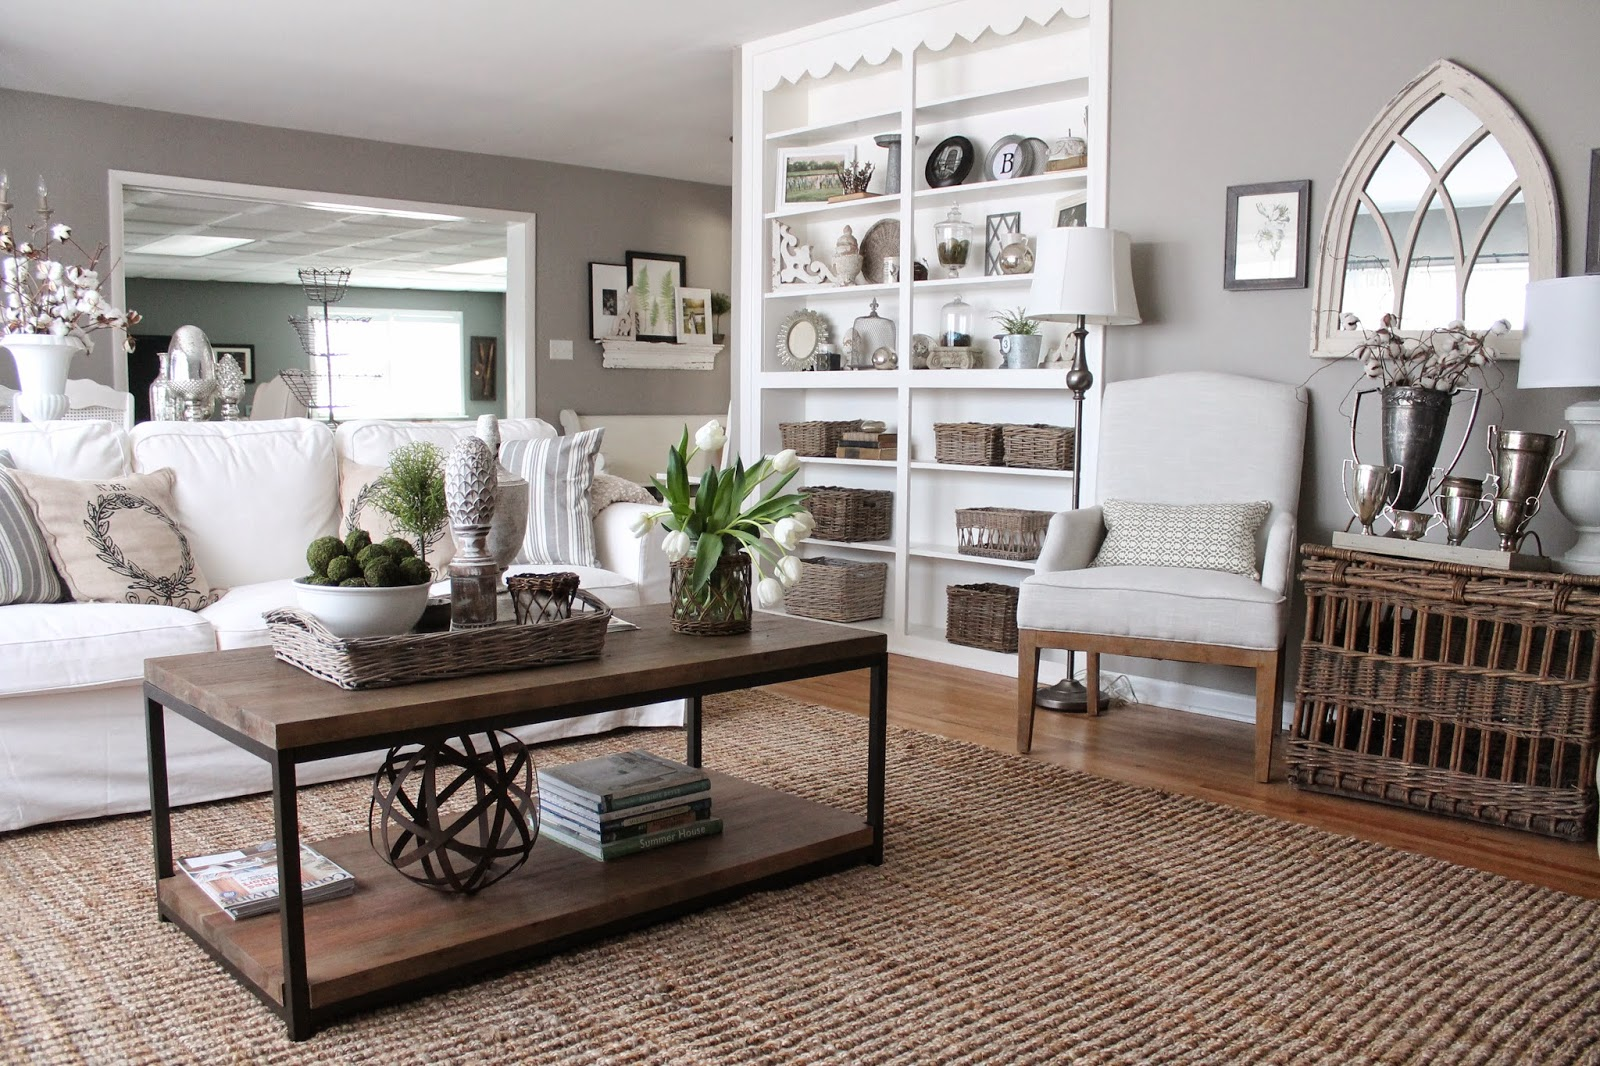 12th and white how to choose gray paint colors How to choose paint colors for living room